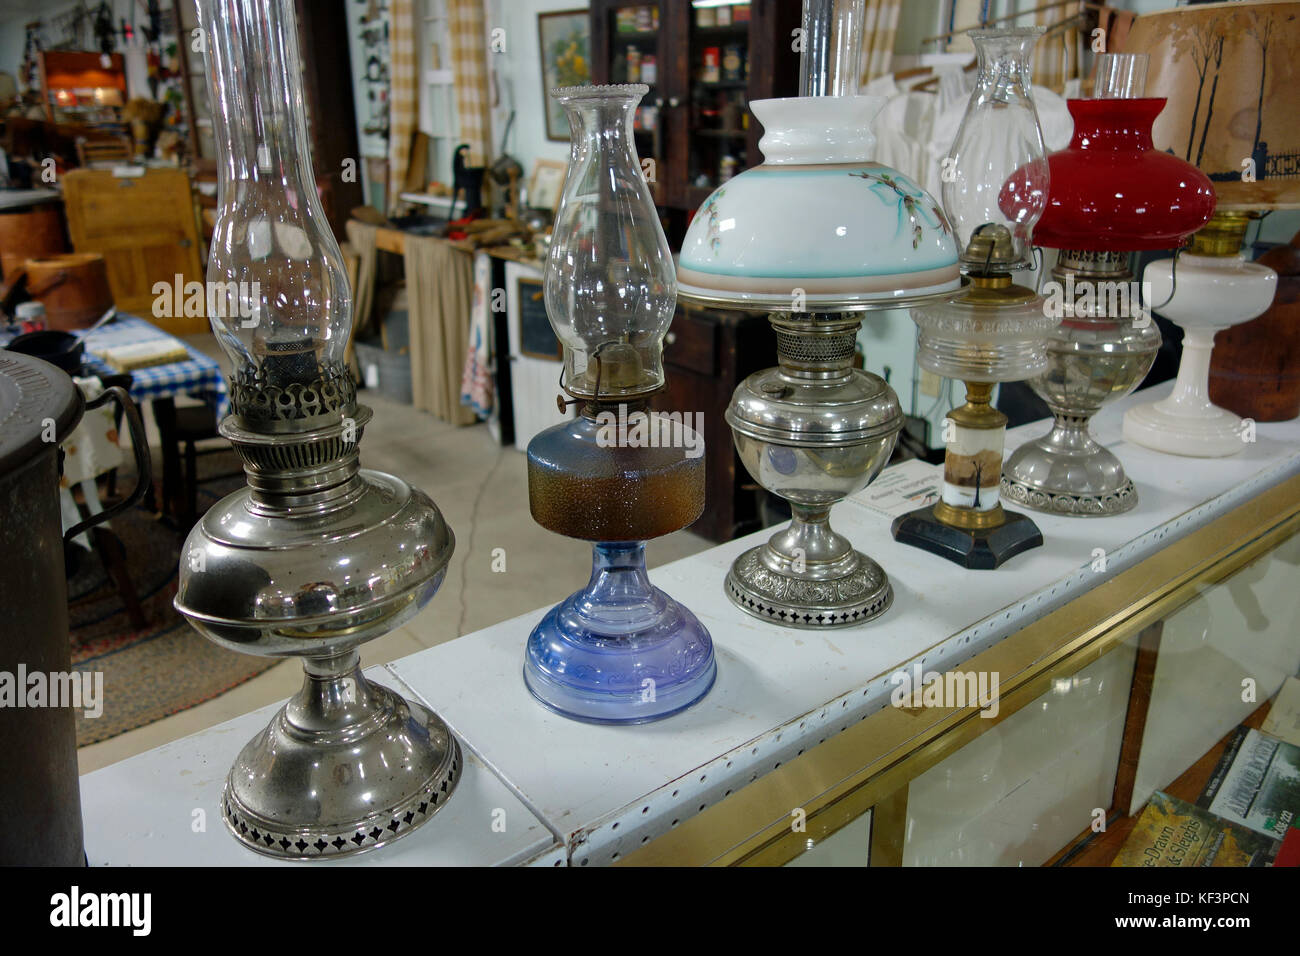 Old antique kerosene paraffin oil lamps - Stock Image